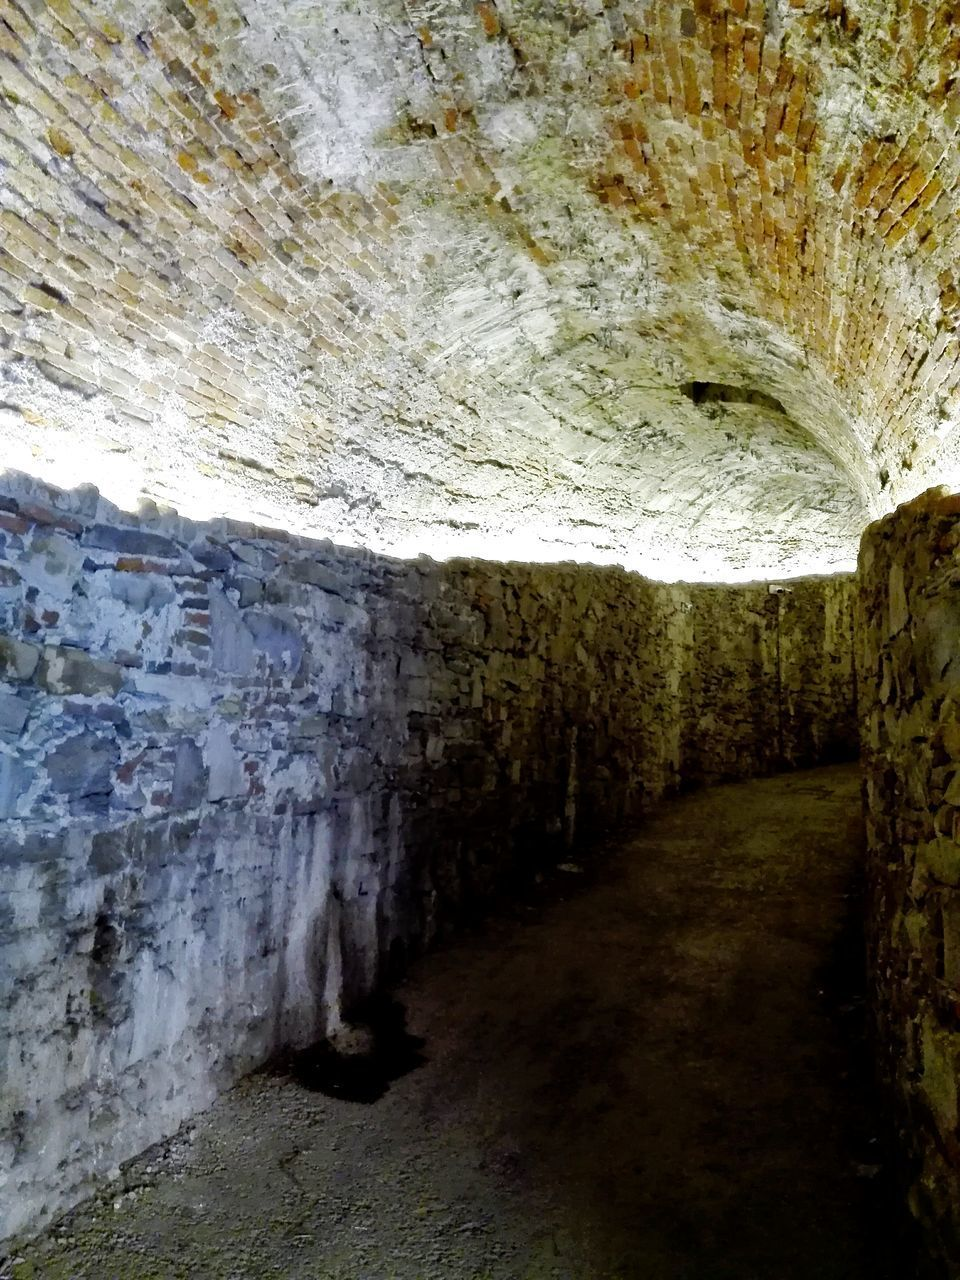 indoors, tunnel, cave, rock - object, underground, no people, day, architecture, nature, water